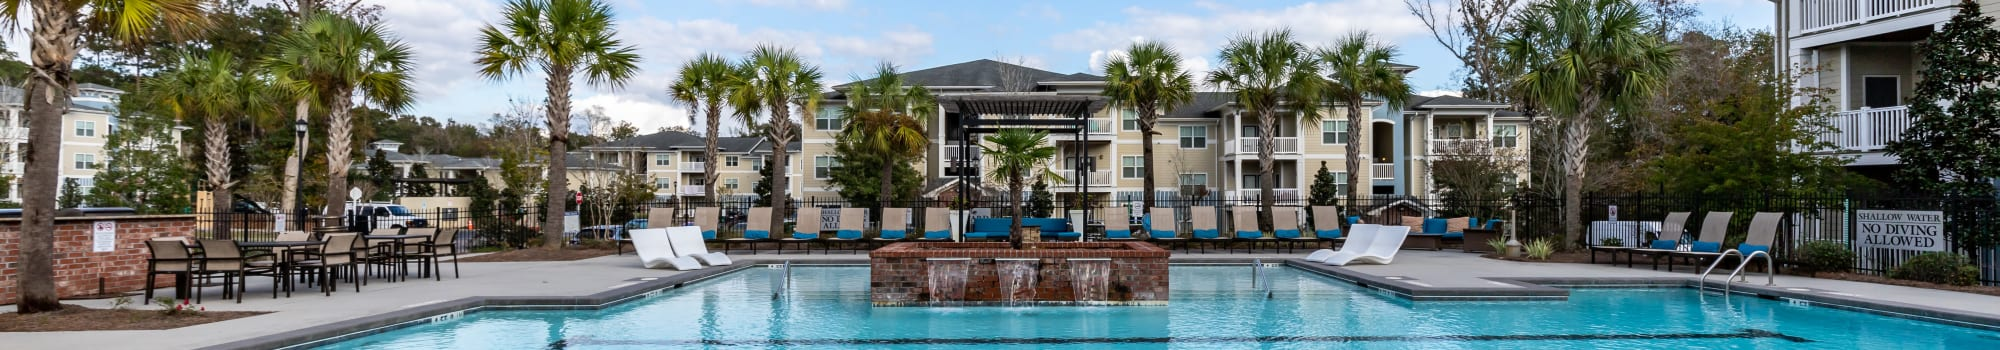 Amenities at Ansley Commons Apartment Homes in Ladson, South Carolina